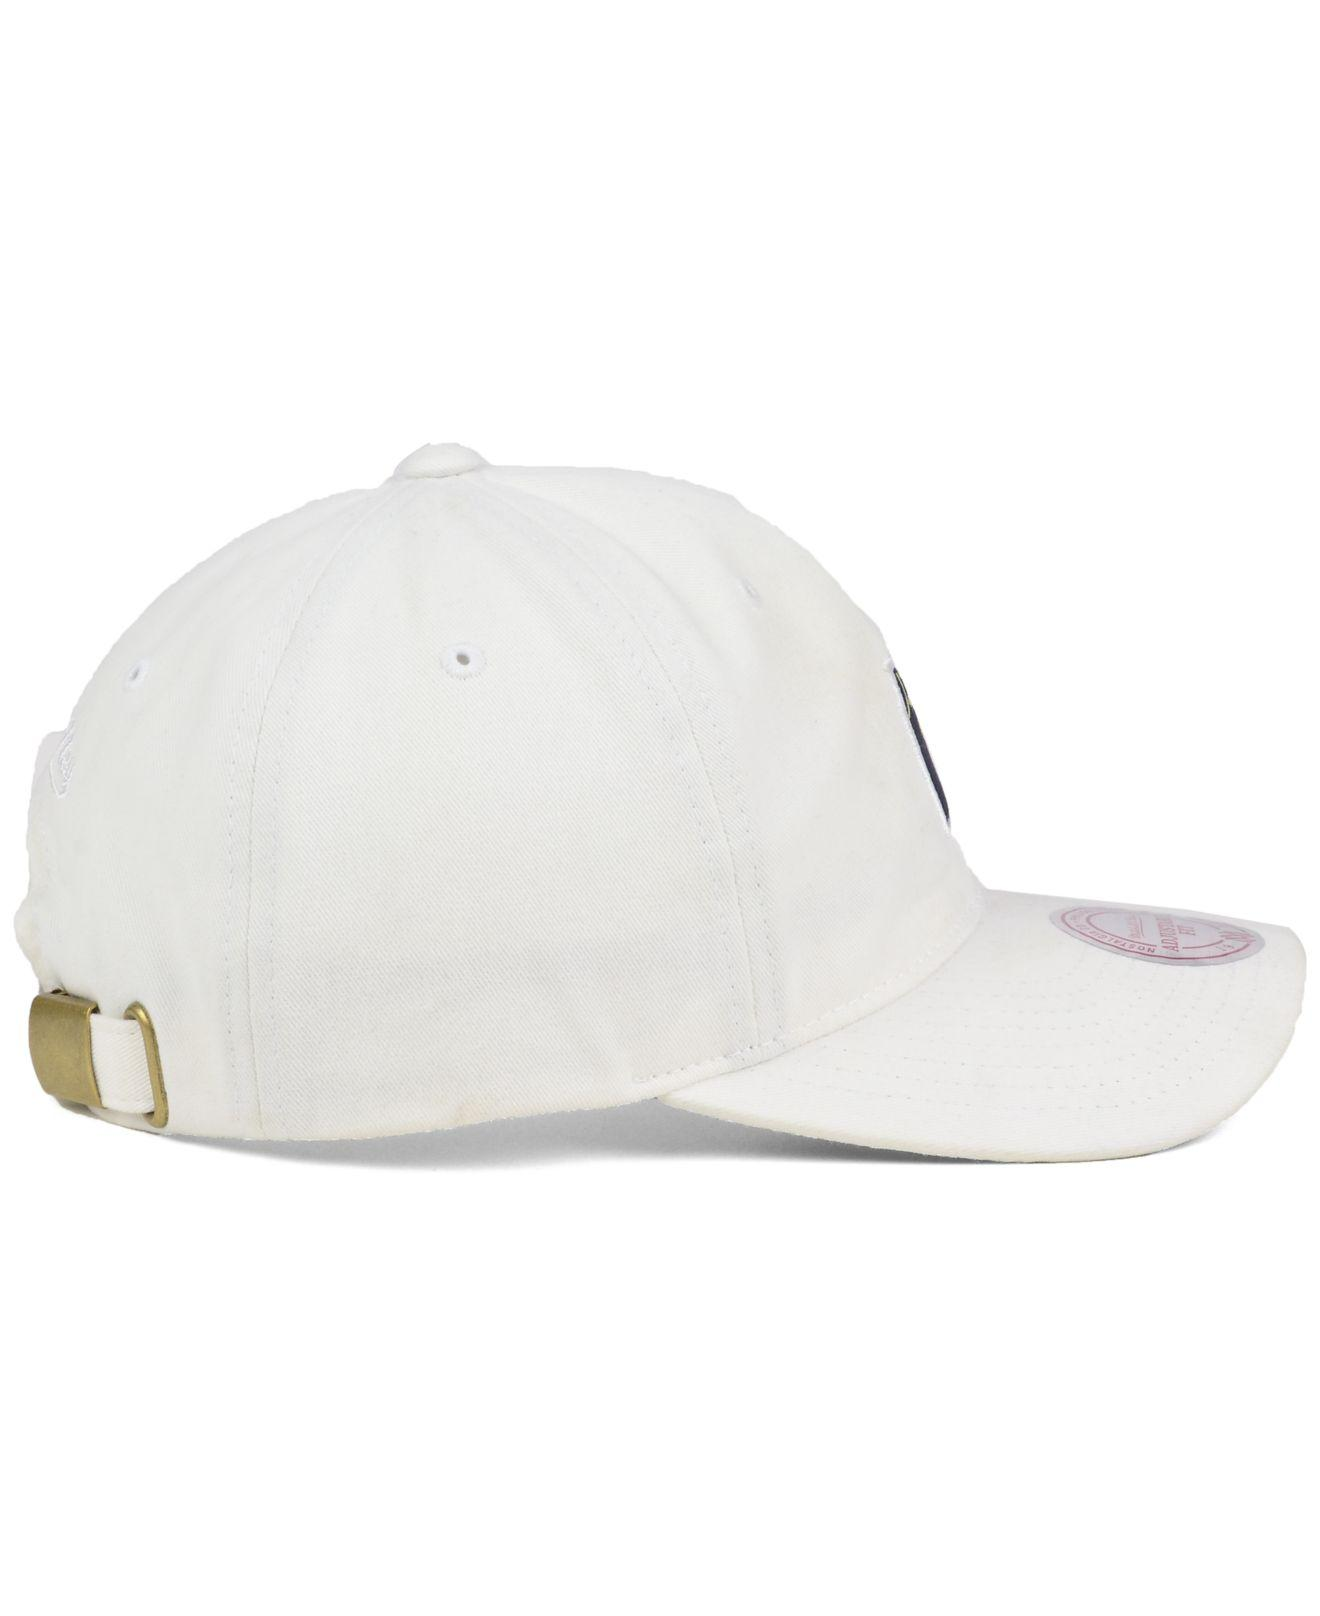 42a8381a687c1 Lyst - Mitchell   Ness Deez Jersey Dad Cap in White for Men